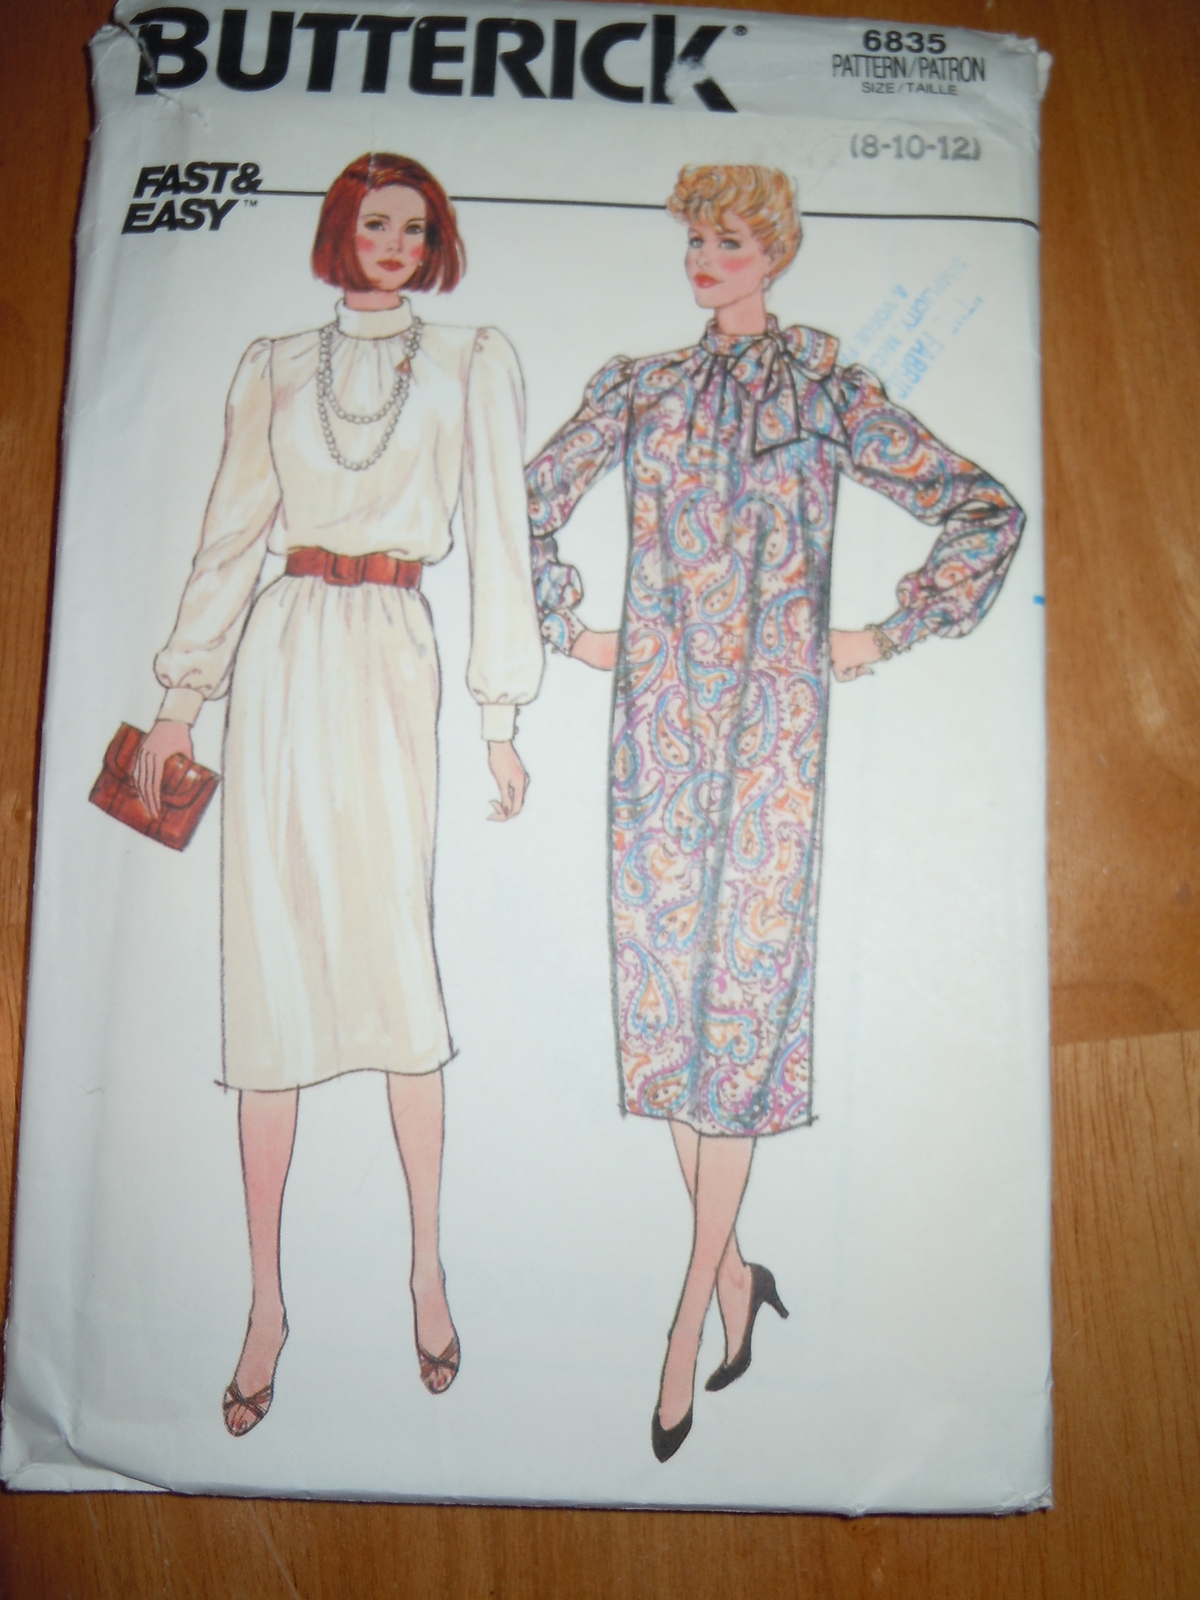 Butterick Misses Size 8-12 Chemise Dress #6835